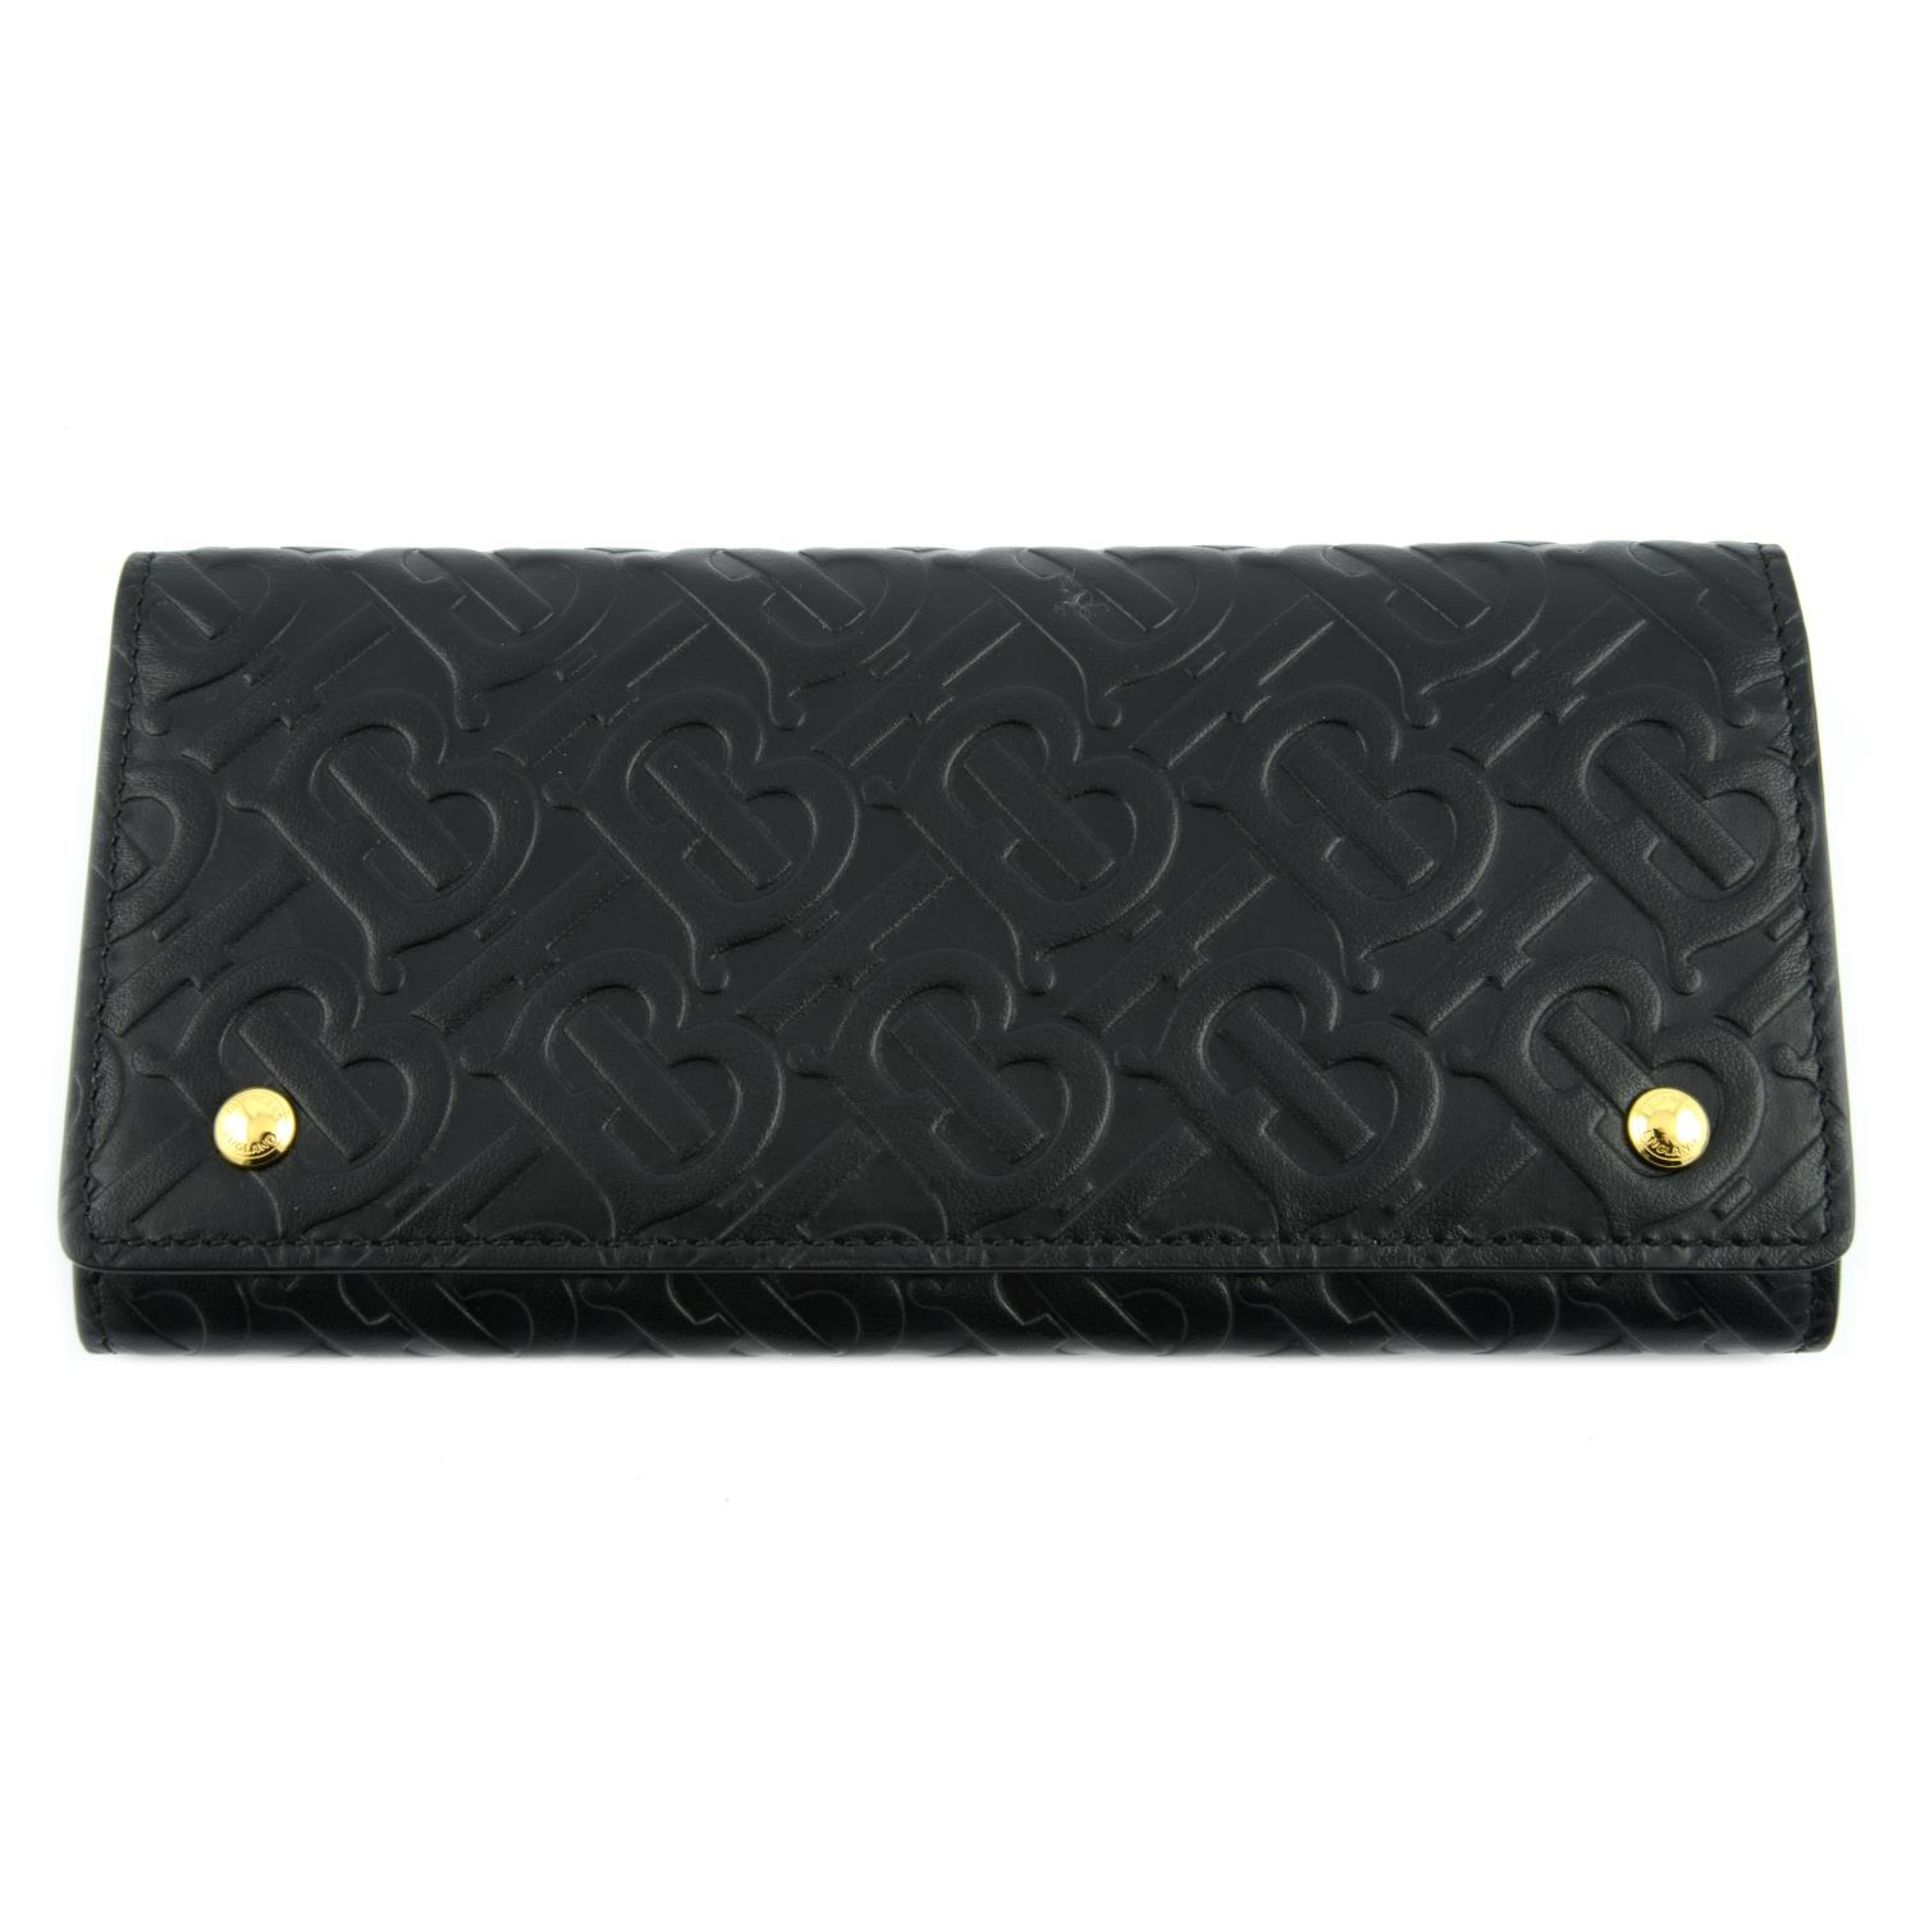 BURBERRY - a black leather monogram continental wallet.